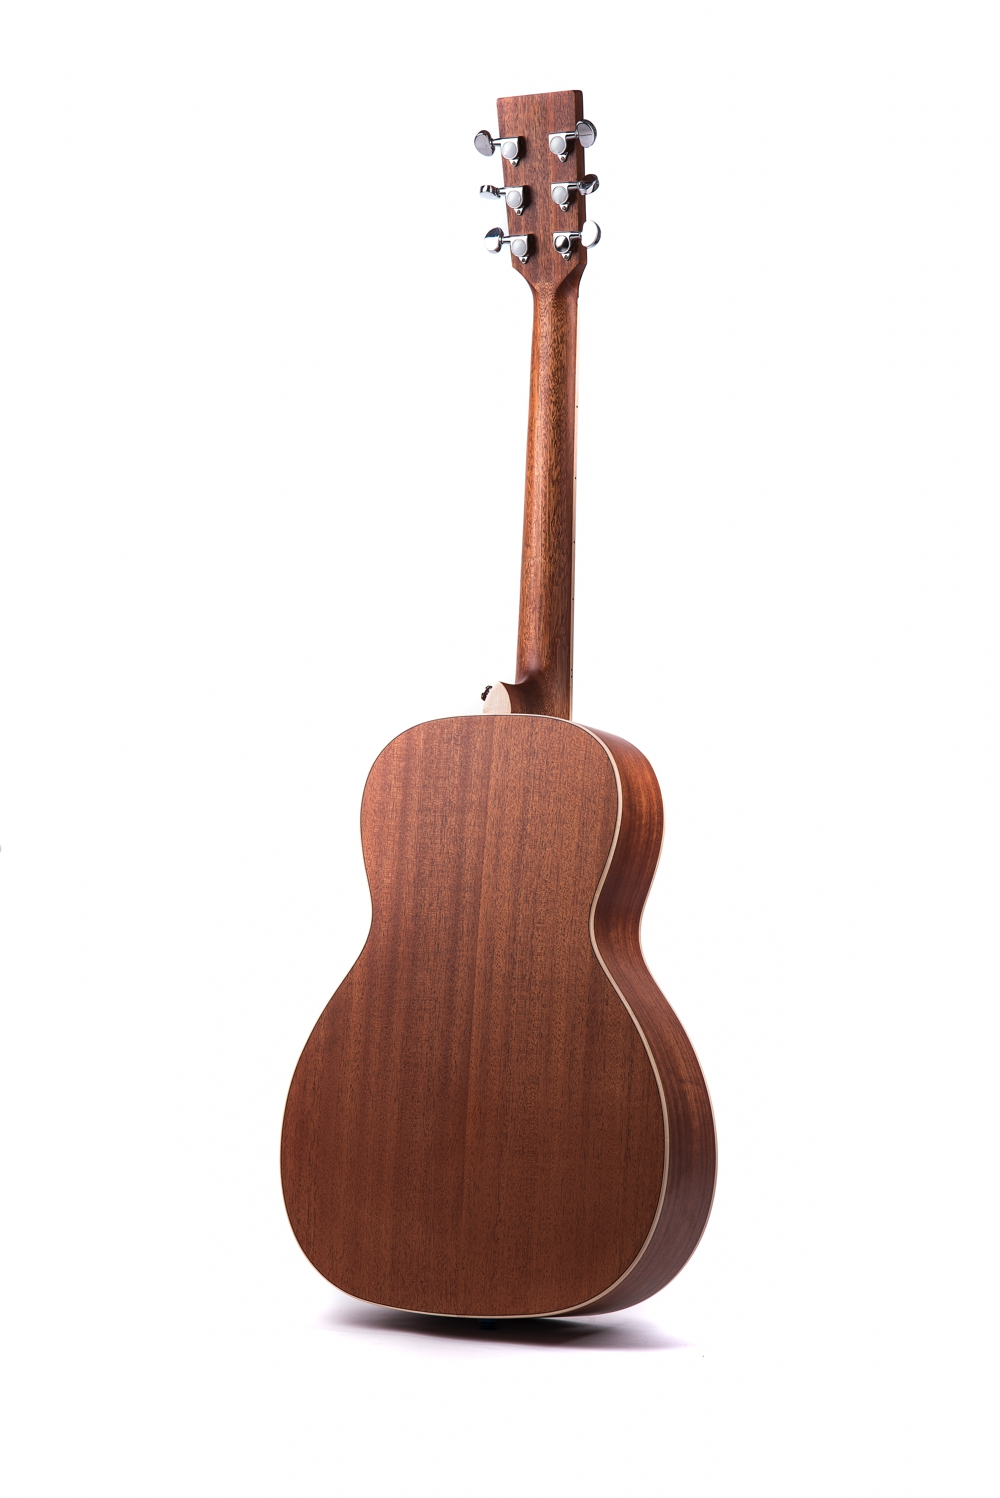 Marlow Neo - acoustic guitar by Auden Guitars. Rear image.